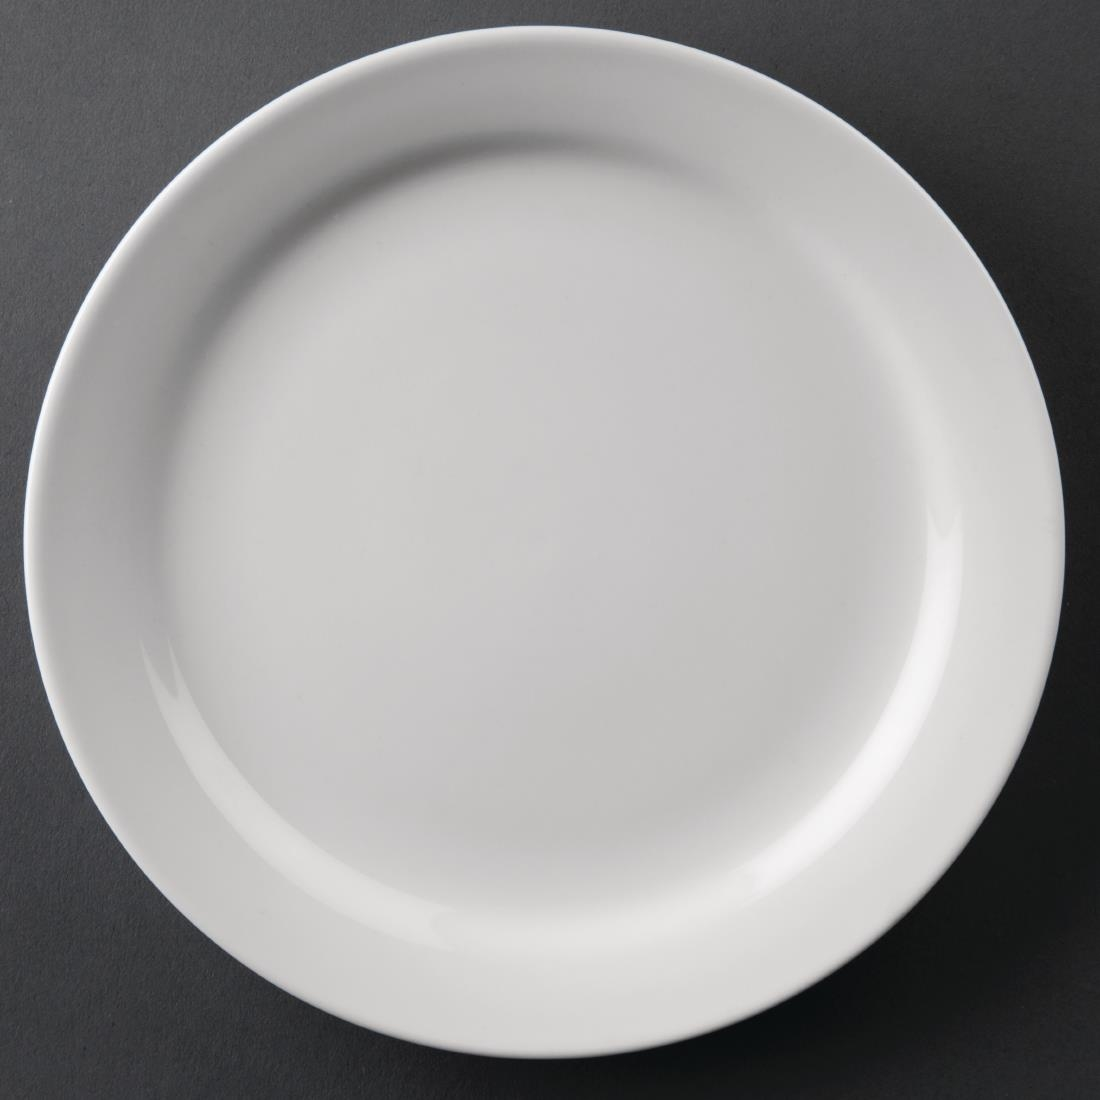 Image of Athena Hotelware Narrow Rimmed Plates 165mm (Pack of 12) Pack of 12